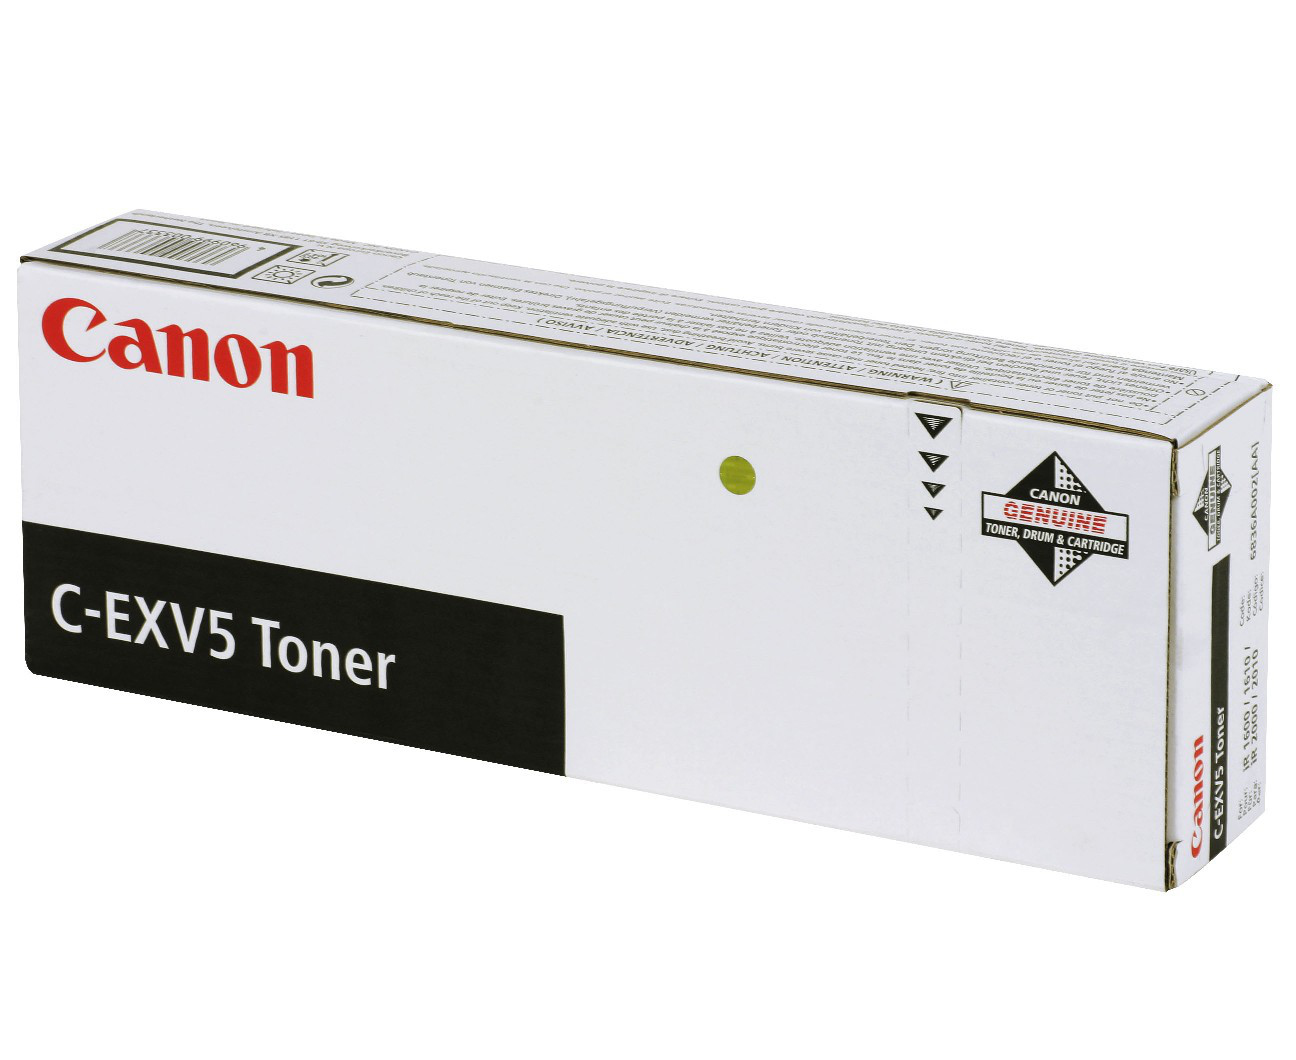 Remanufactured Canon 6836A002AA Toner Cartridge Black 15k 6836A002 - rem01